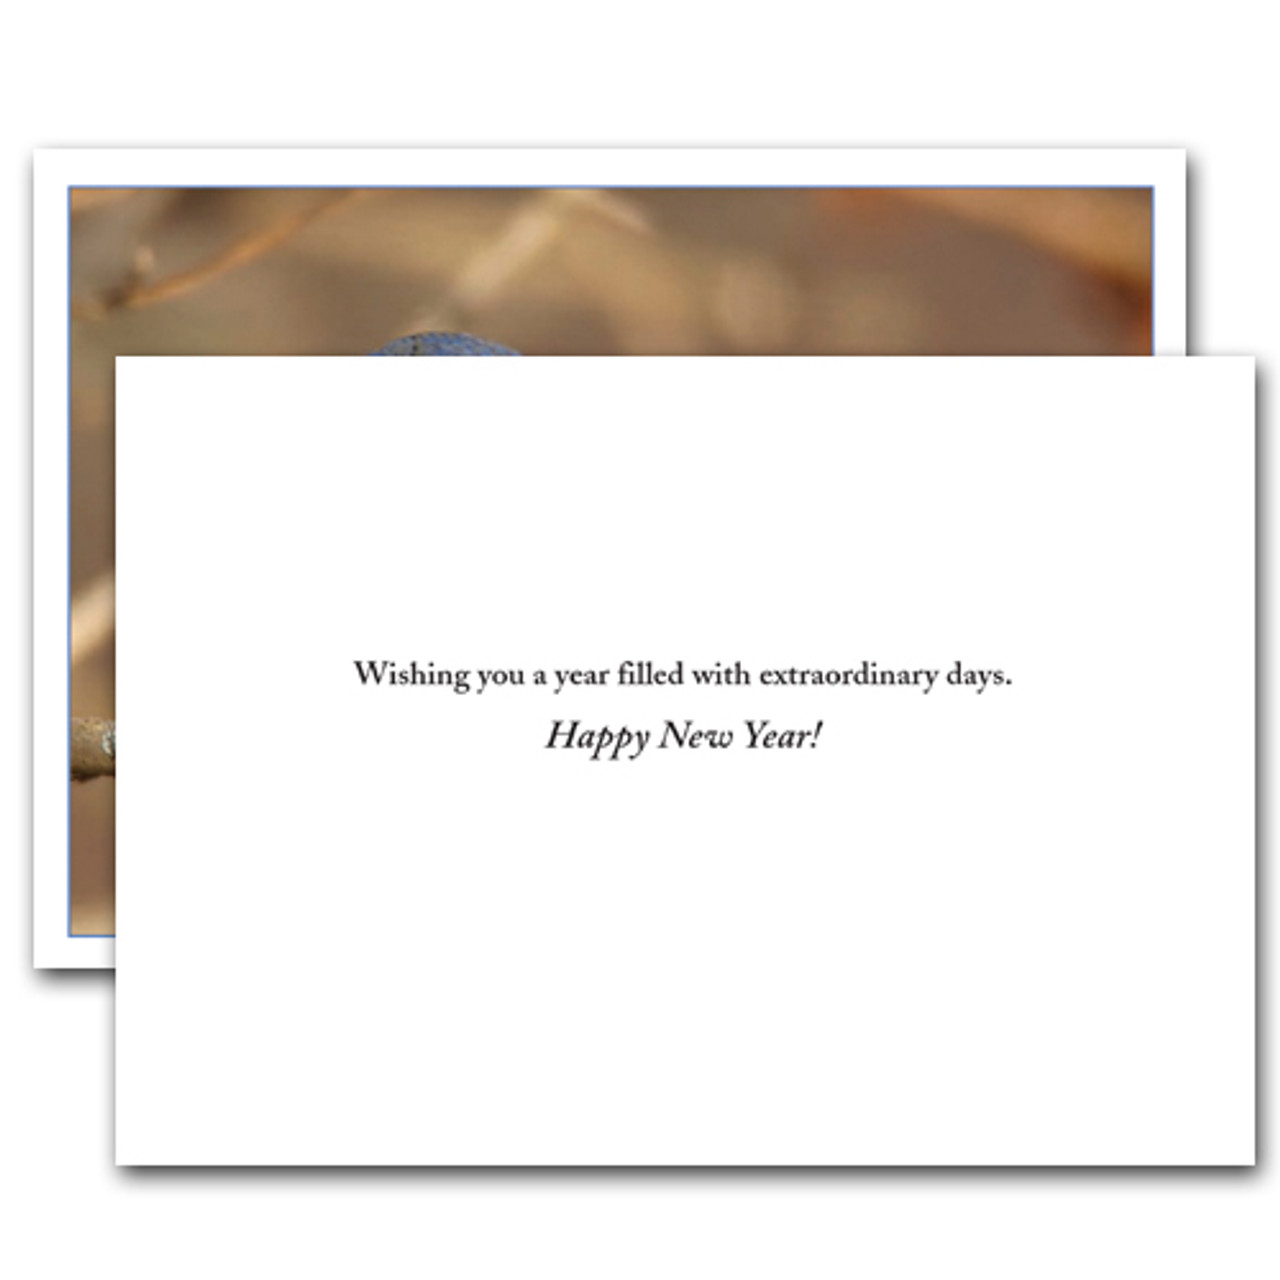 "Inside of card New Years Greeting reads, ""Wishing you a year filled with extraordinary days. Happy New Year!"""